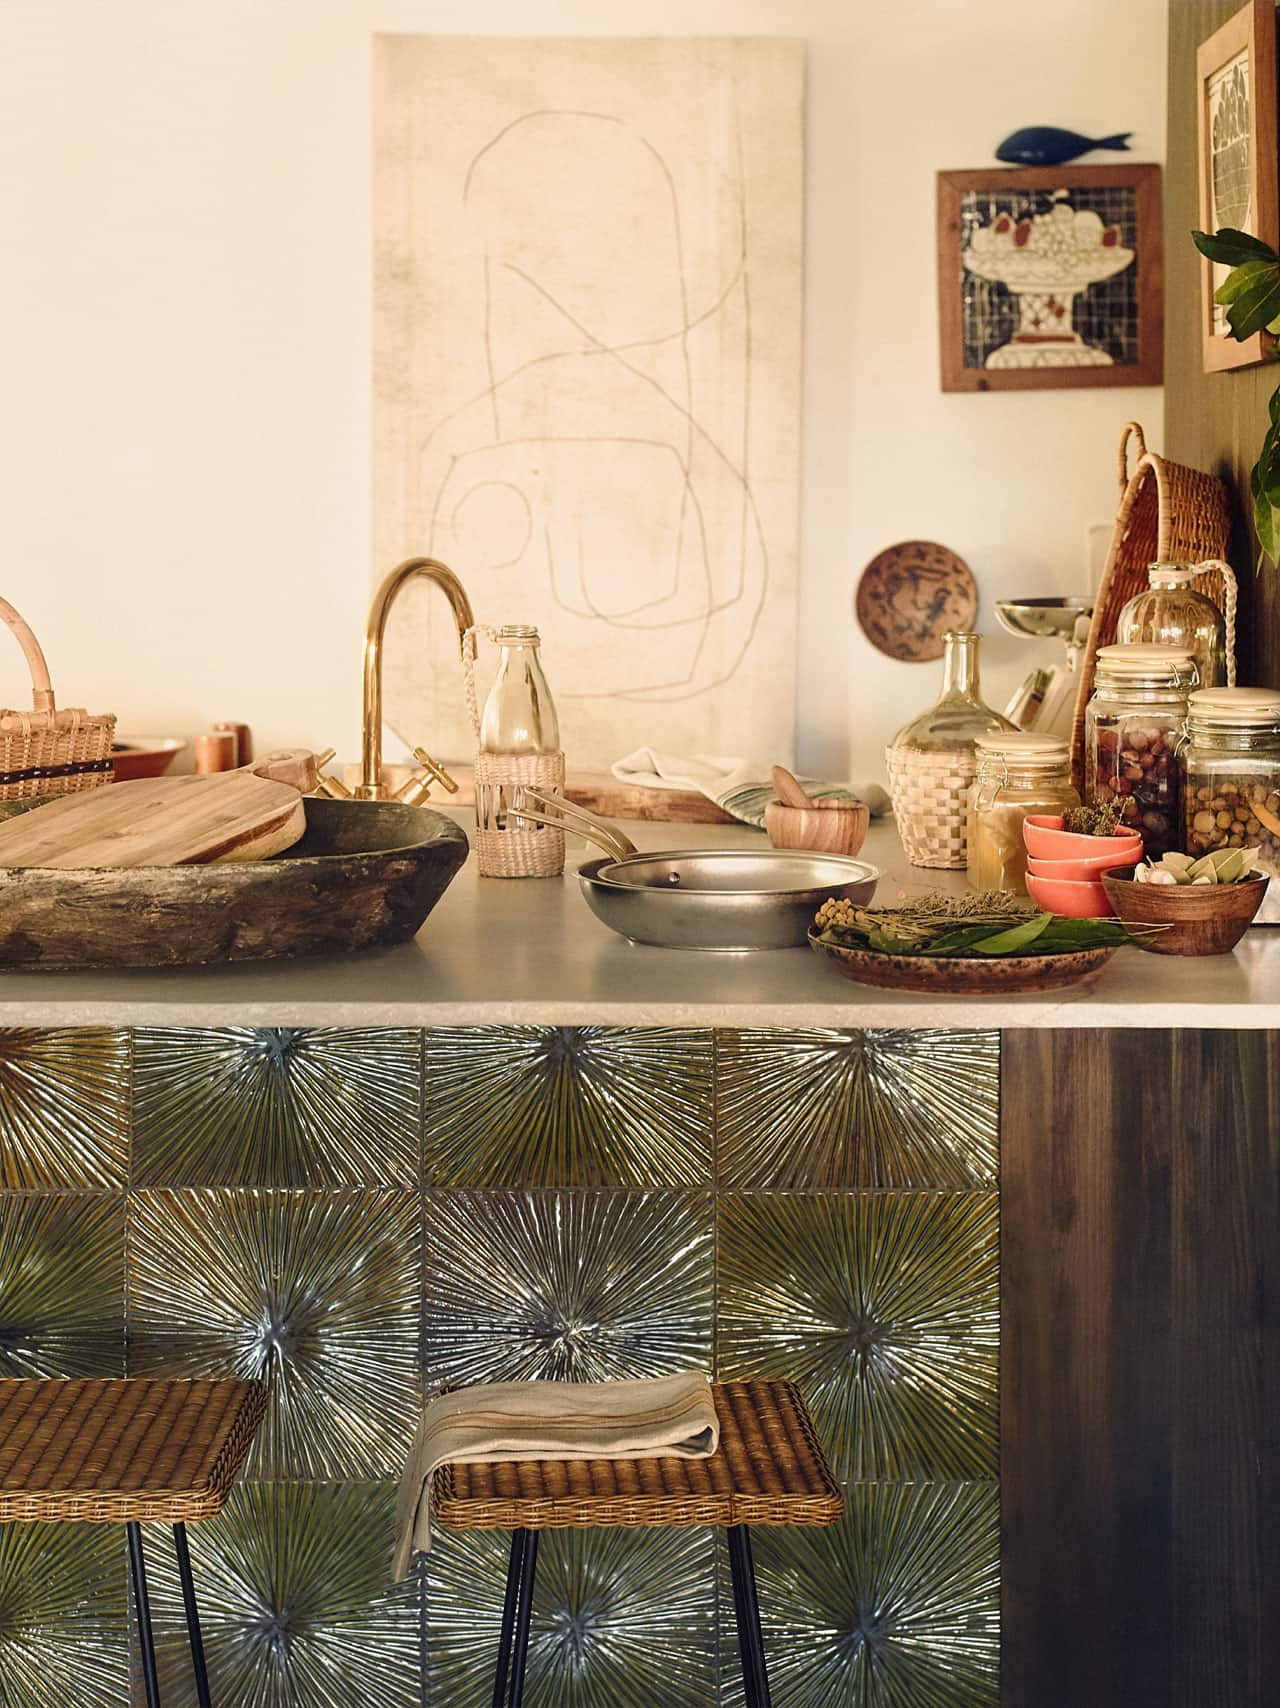 Beautifully styled kitchen from Zara Home